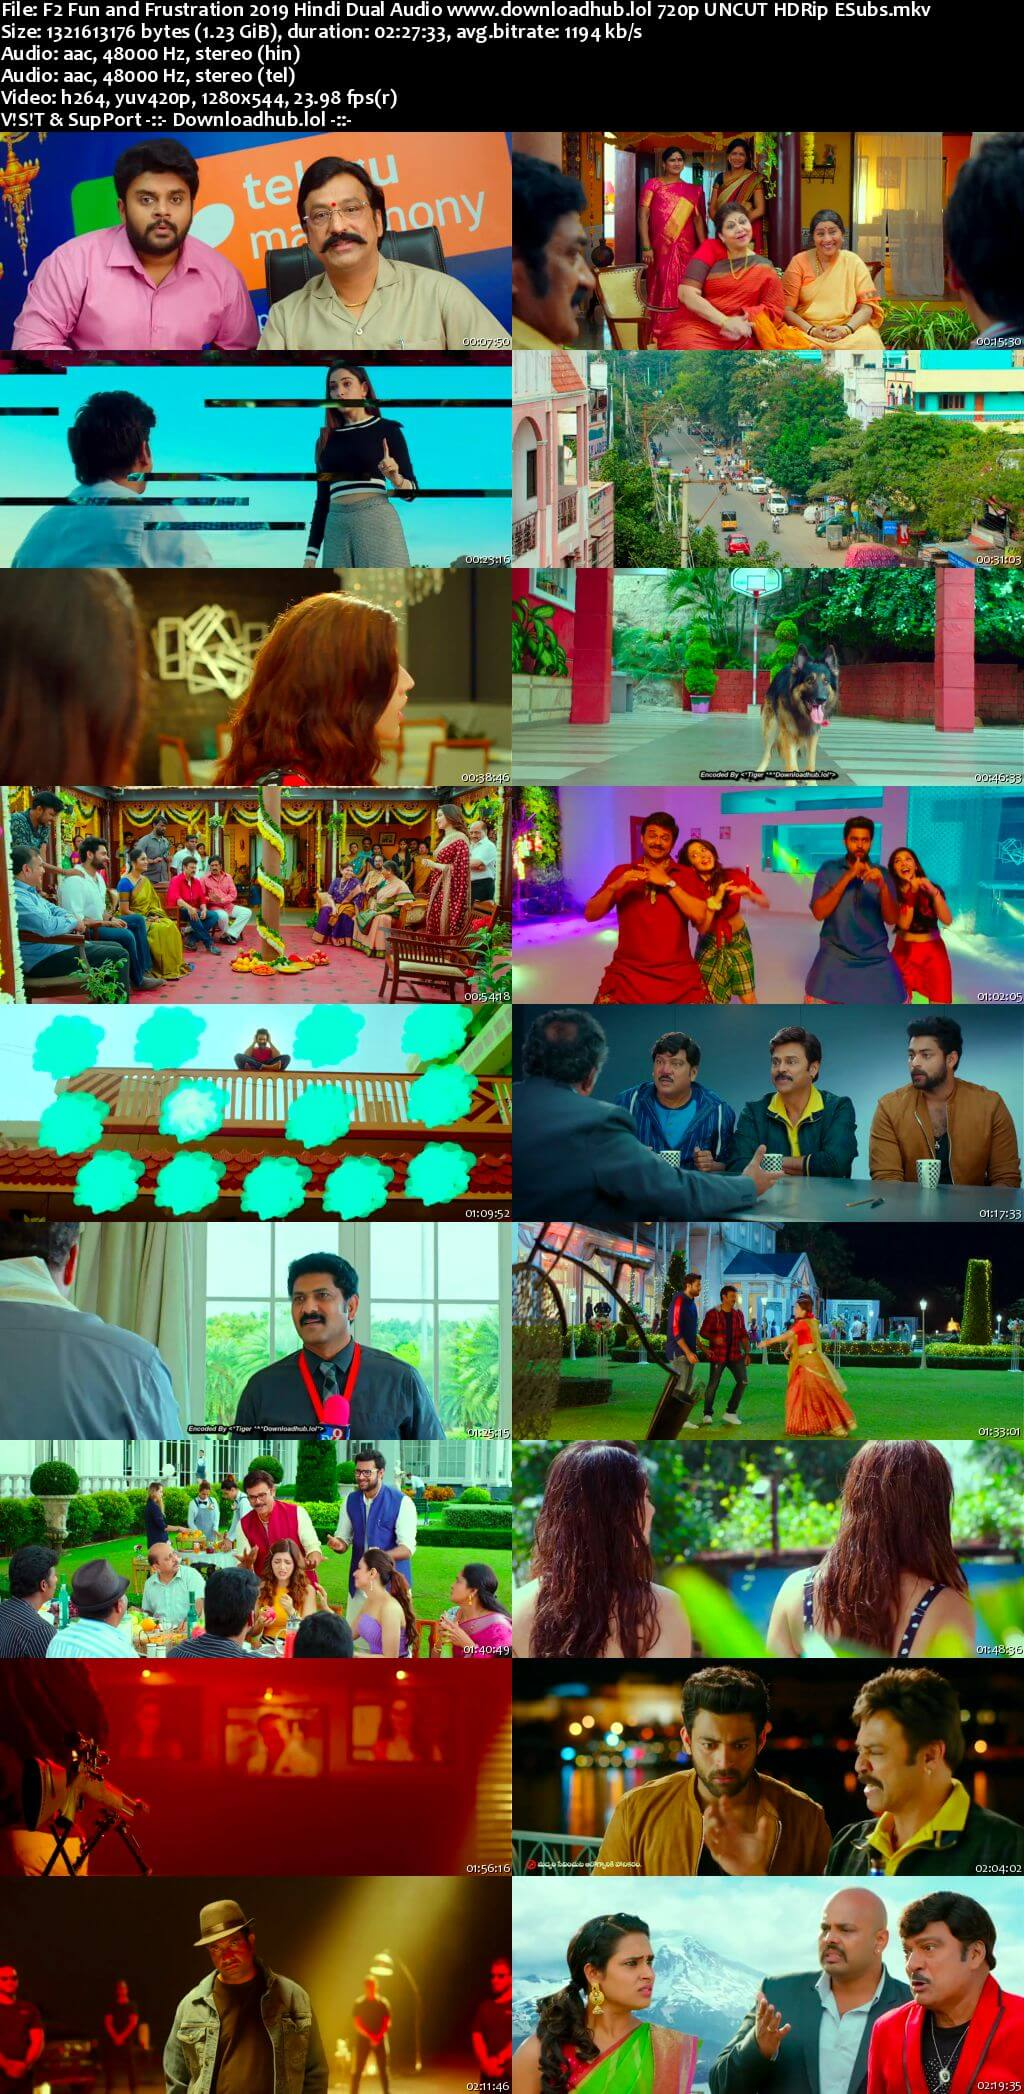 F2 Fun and Frustration 2019 Hindi Dual Audio 720p UNCUT HDRip ESubs